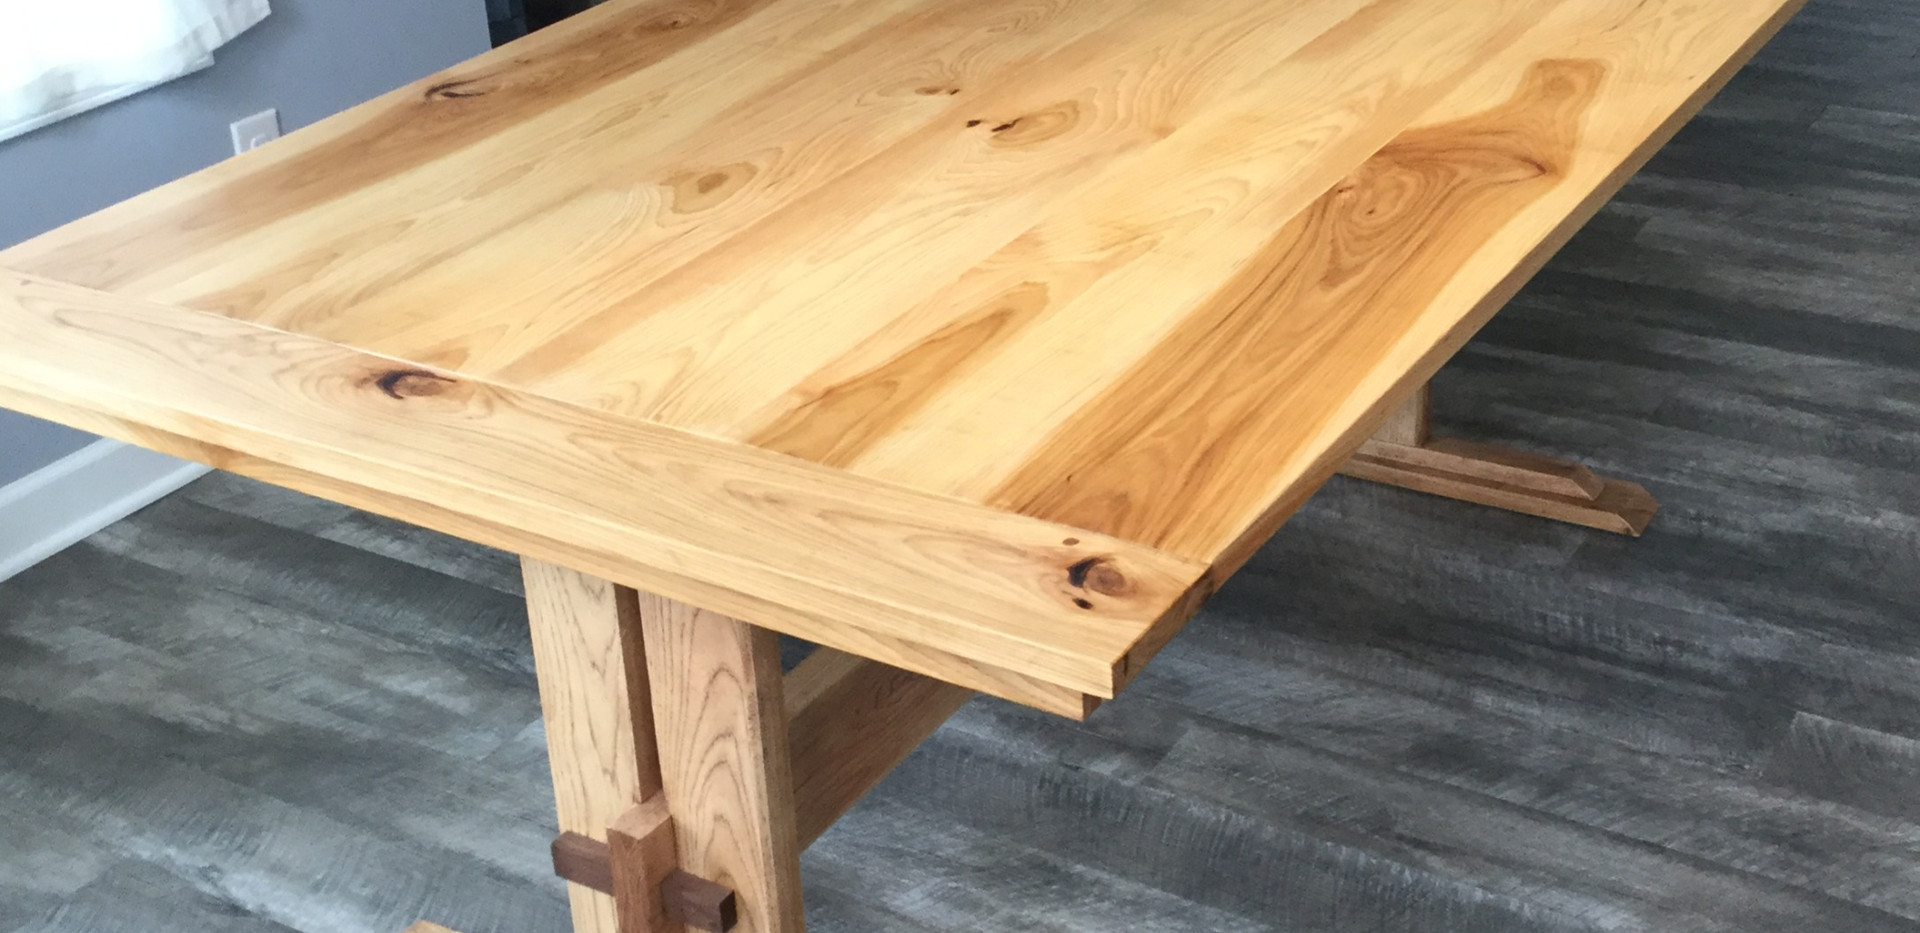 Johnny's finished chestnut table